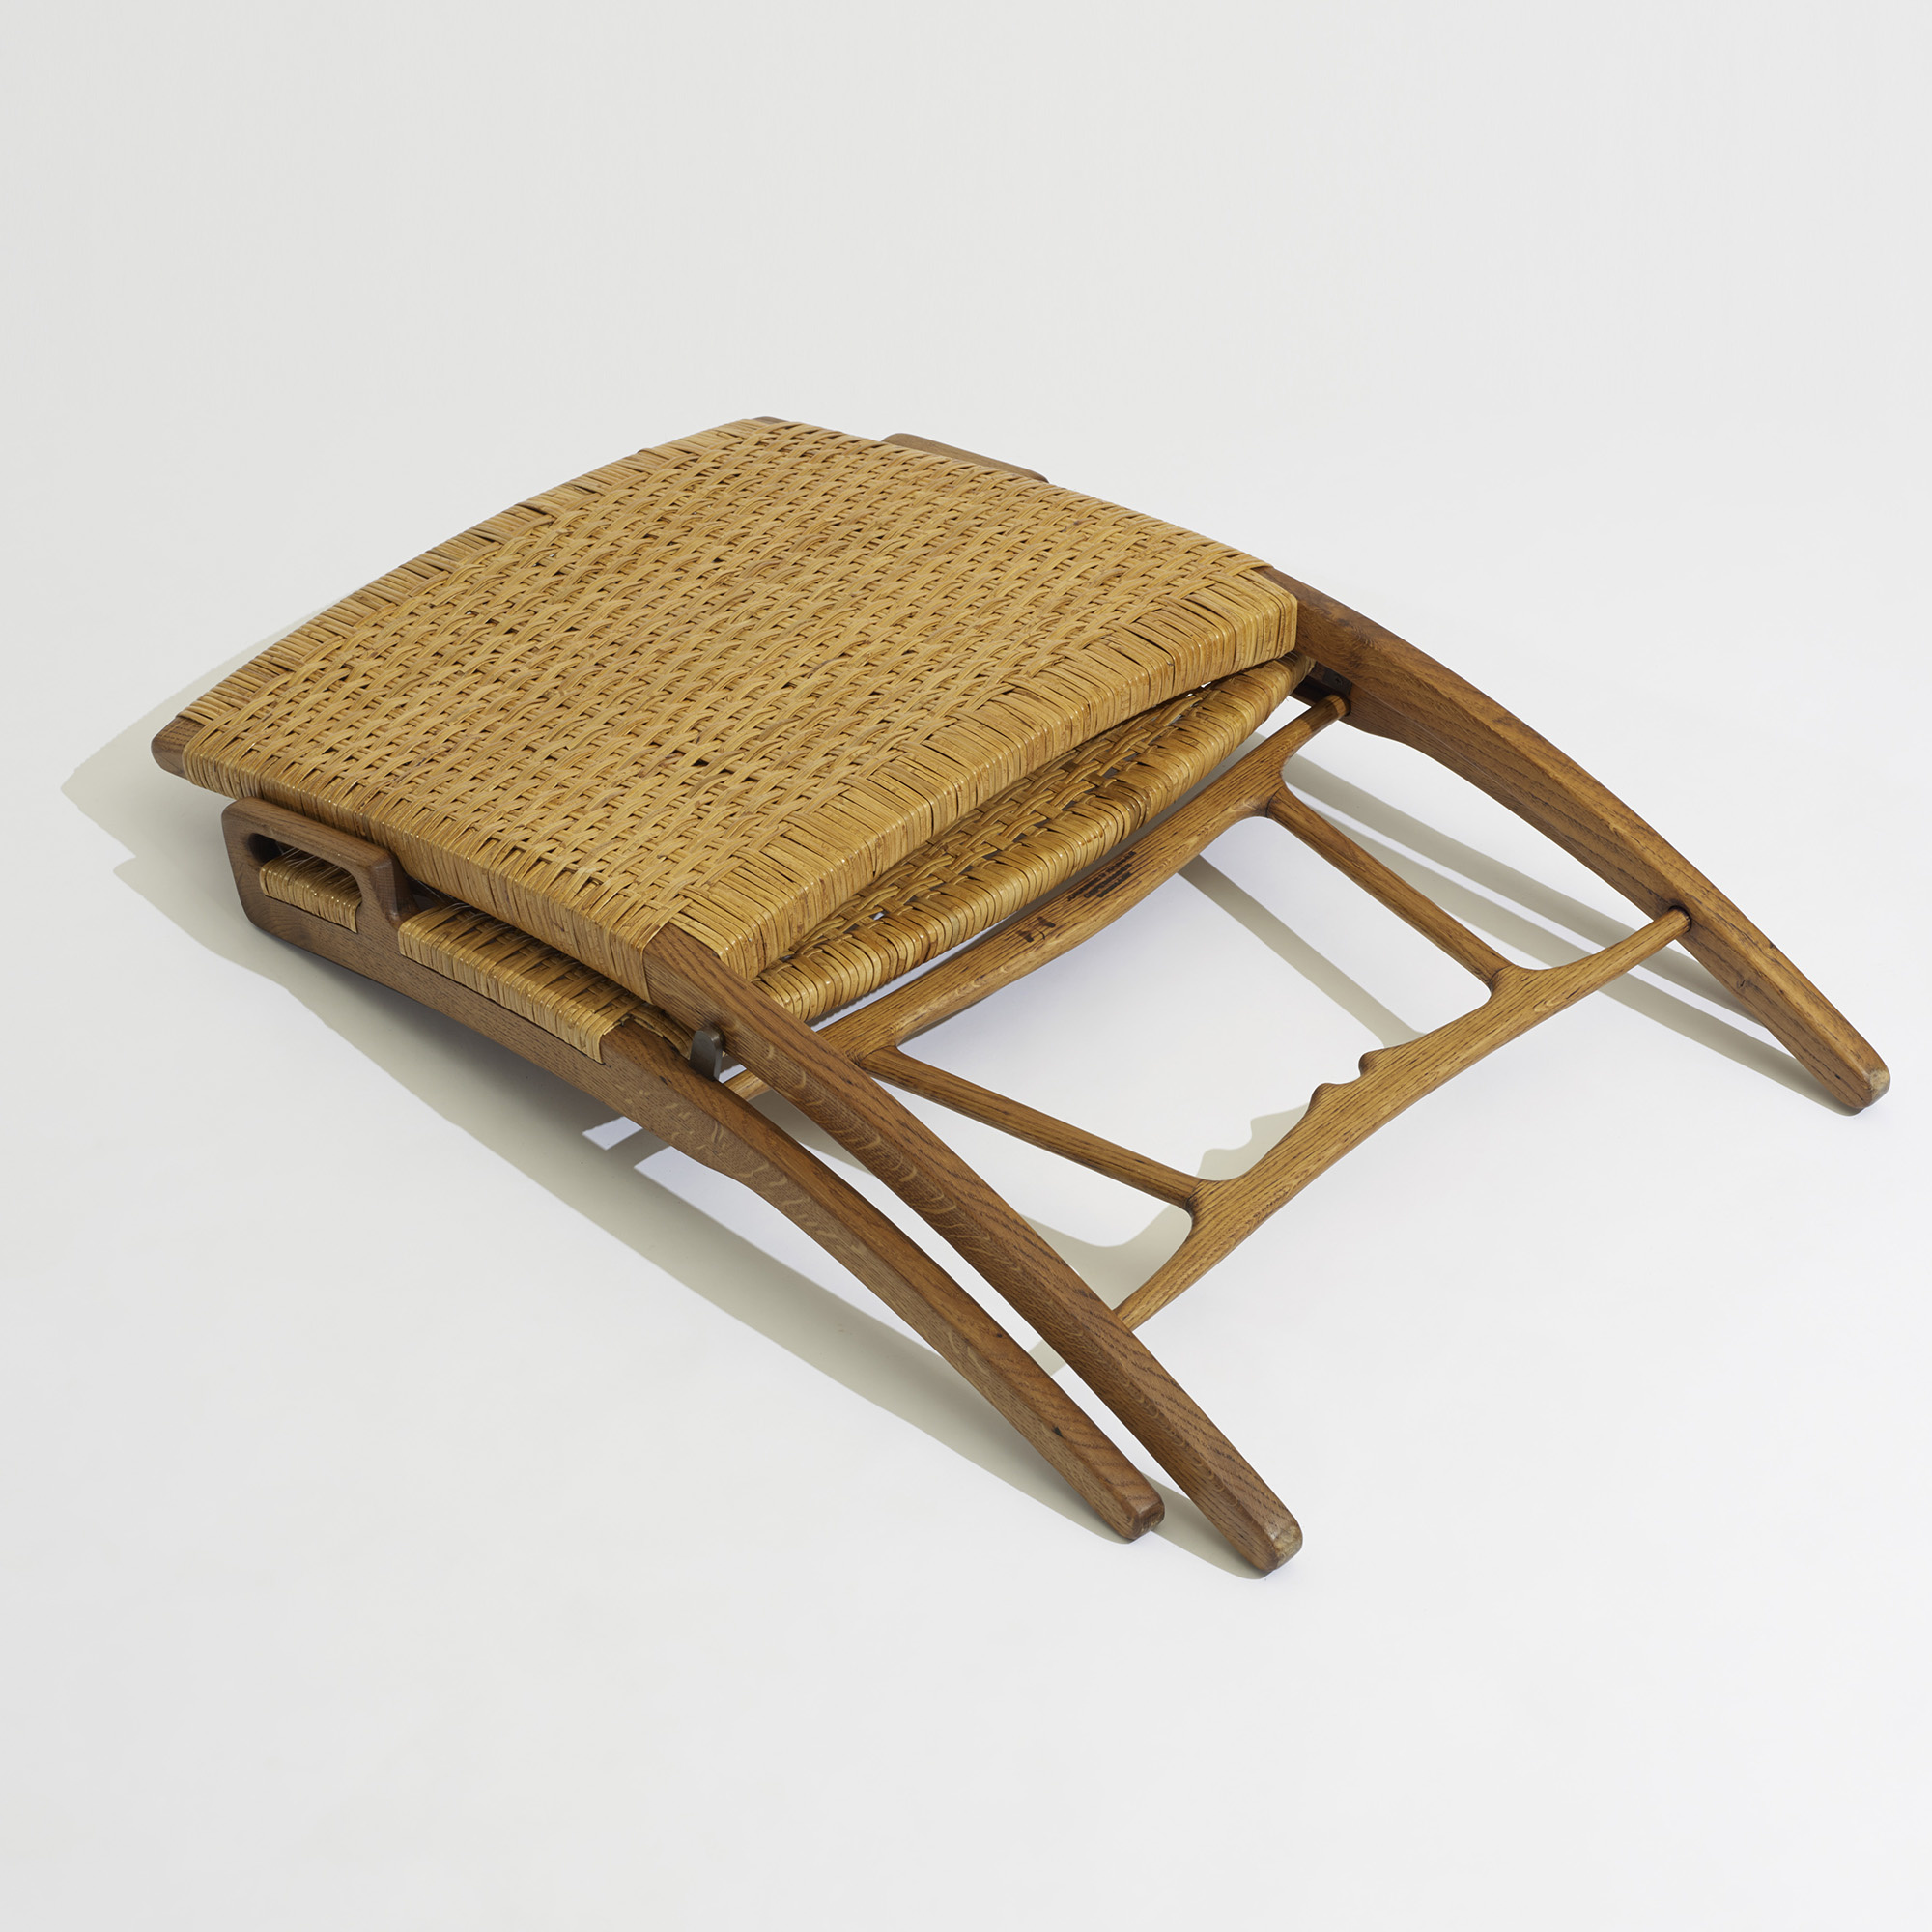 Hans Wegner Folding Chair 164 Hans J Wegner Folding Chair